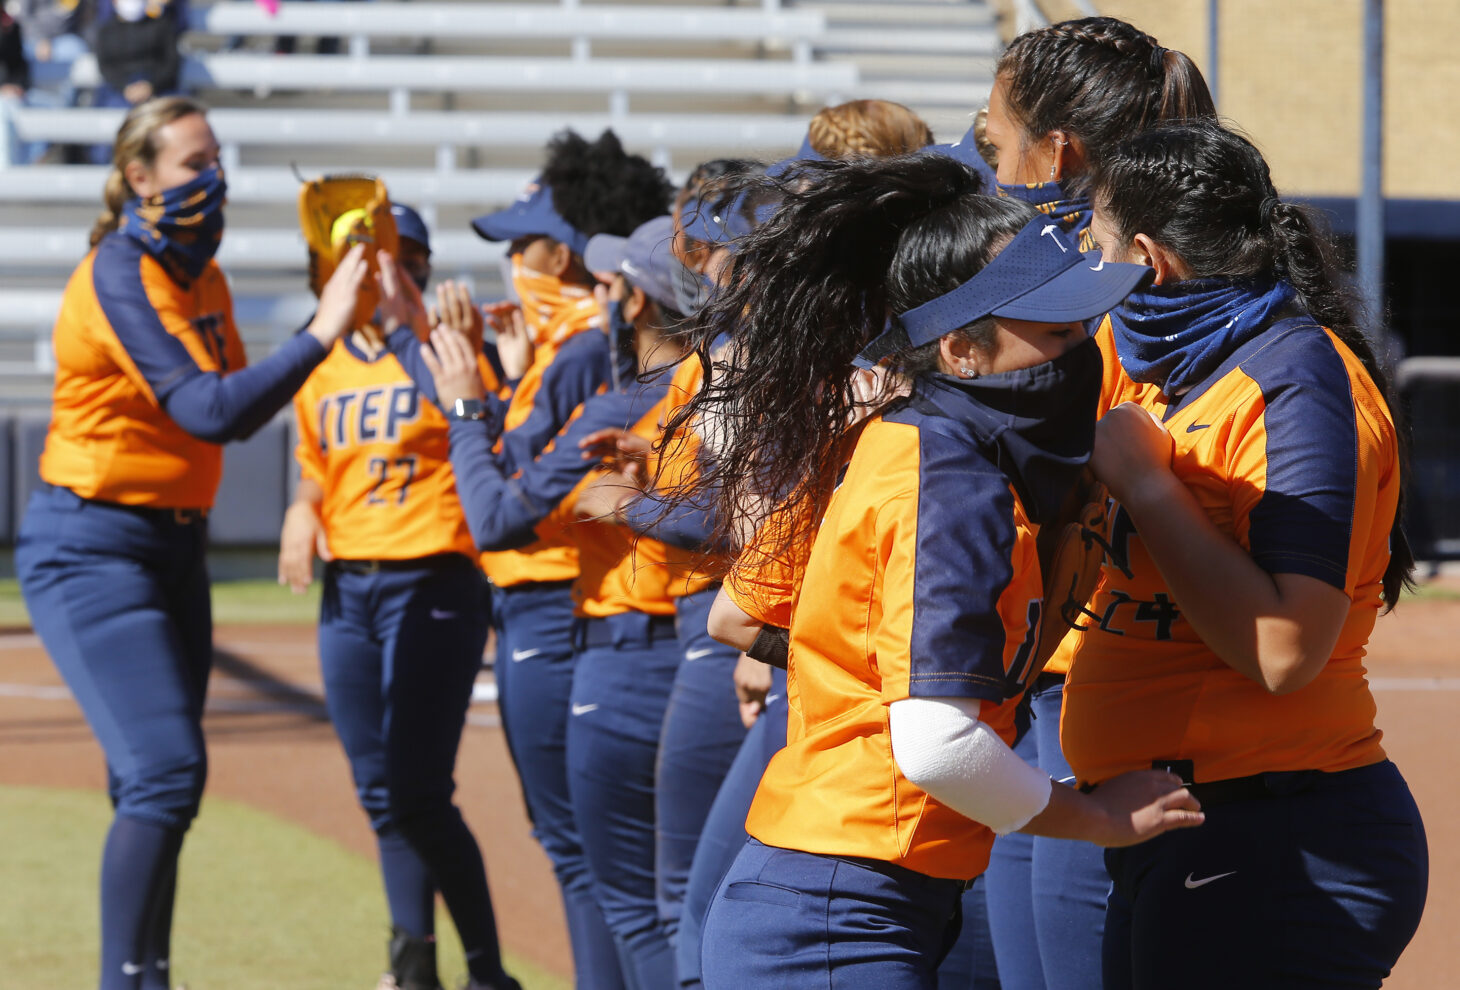 UTEP Softball Team Photo | Photo by Ruben Ramirez